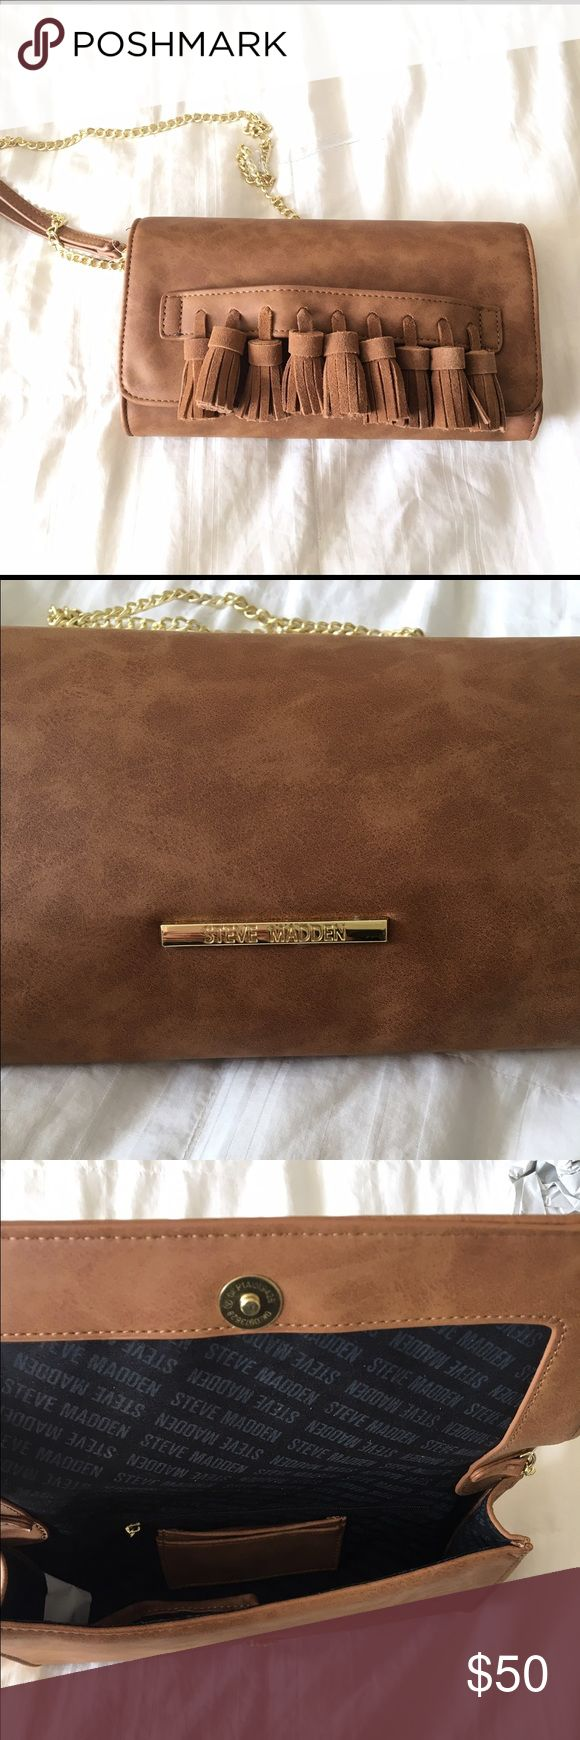 """🎉Sale🎉Steve Madden Cognac Crossbody/Clutch NWT Steve Madden Cognac Crossbody/Clutch.  Could be used as crossbody or clutch. Gold tone chain strap. Body is vegan leather, tassels are 100% genuine suede. New with tags. Never used. One small spot show on 3rd pic probably from logistics. Can't tell as that part of the tassel is more to the backside.  10""""  x 5.5""""  X 2"""".   23"""" strap drop Steve Madden Bags Crossbody Bags"""